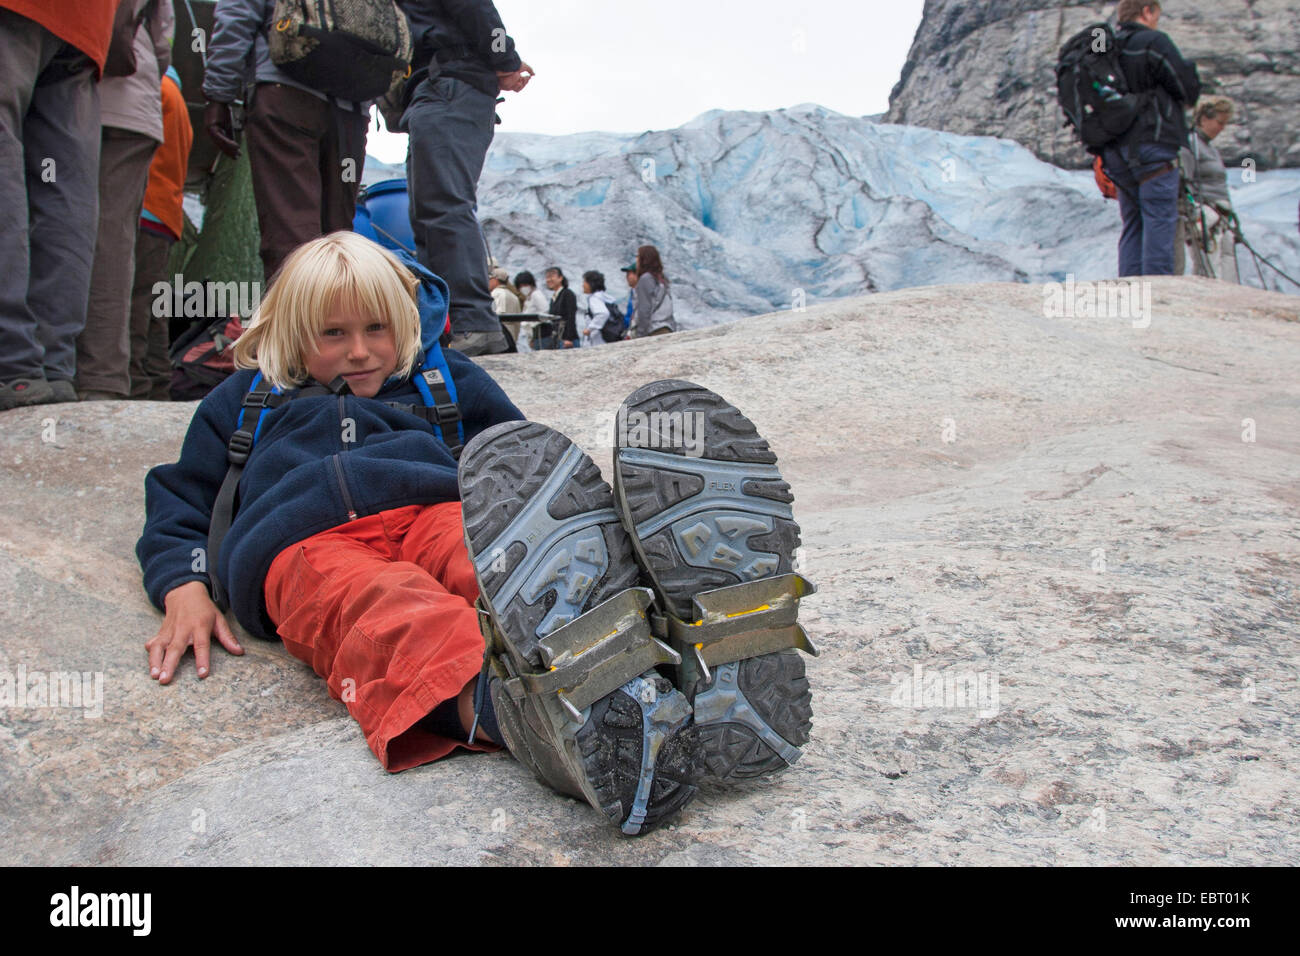 boy applyed ice crampons for glacier travelling, Norway, Jostedalsbreen National Park - Stock Image